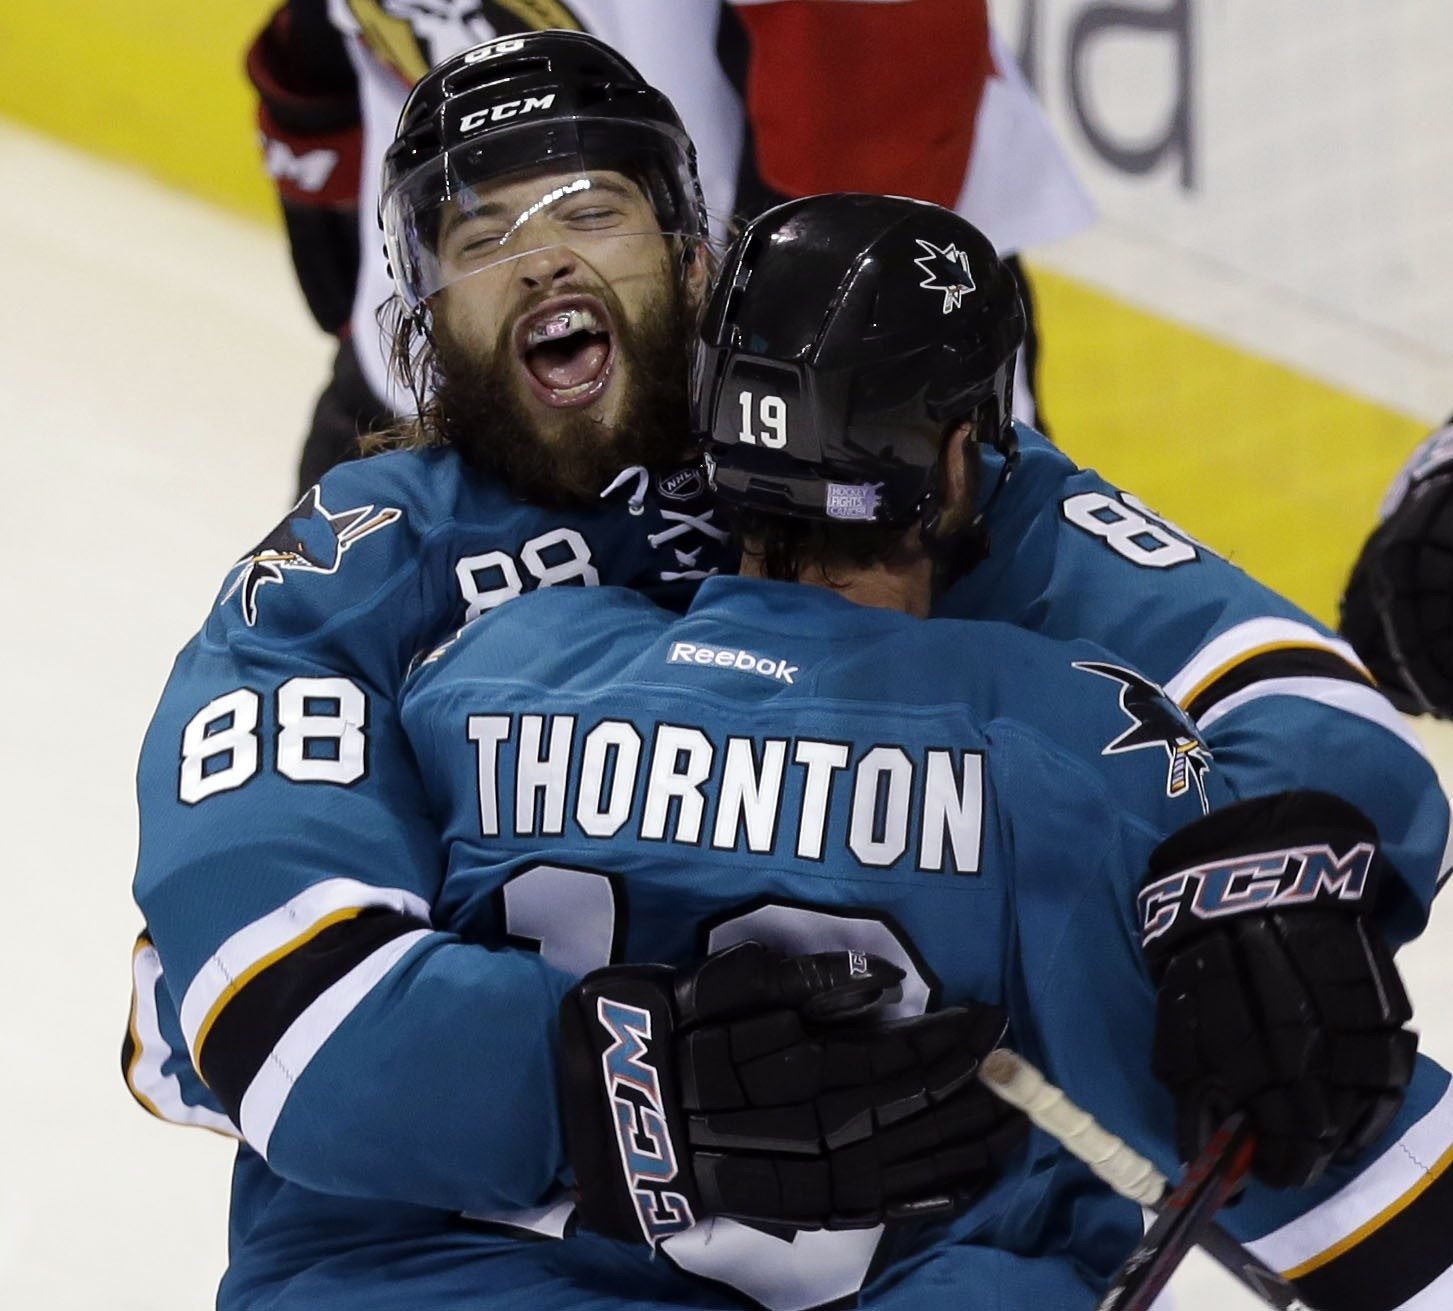 AP Photo/Marcio Jose SanchezSan Jose Sharks' Brent Burns (88) celebrates with teammate Joe Thornton after scoring the go-ahead goal during the third period of an NHL hockey game against the Ottawa Senators on Saturday